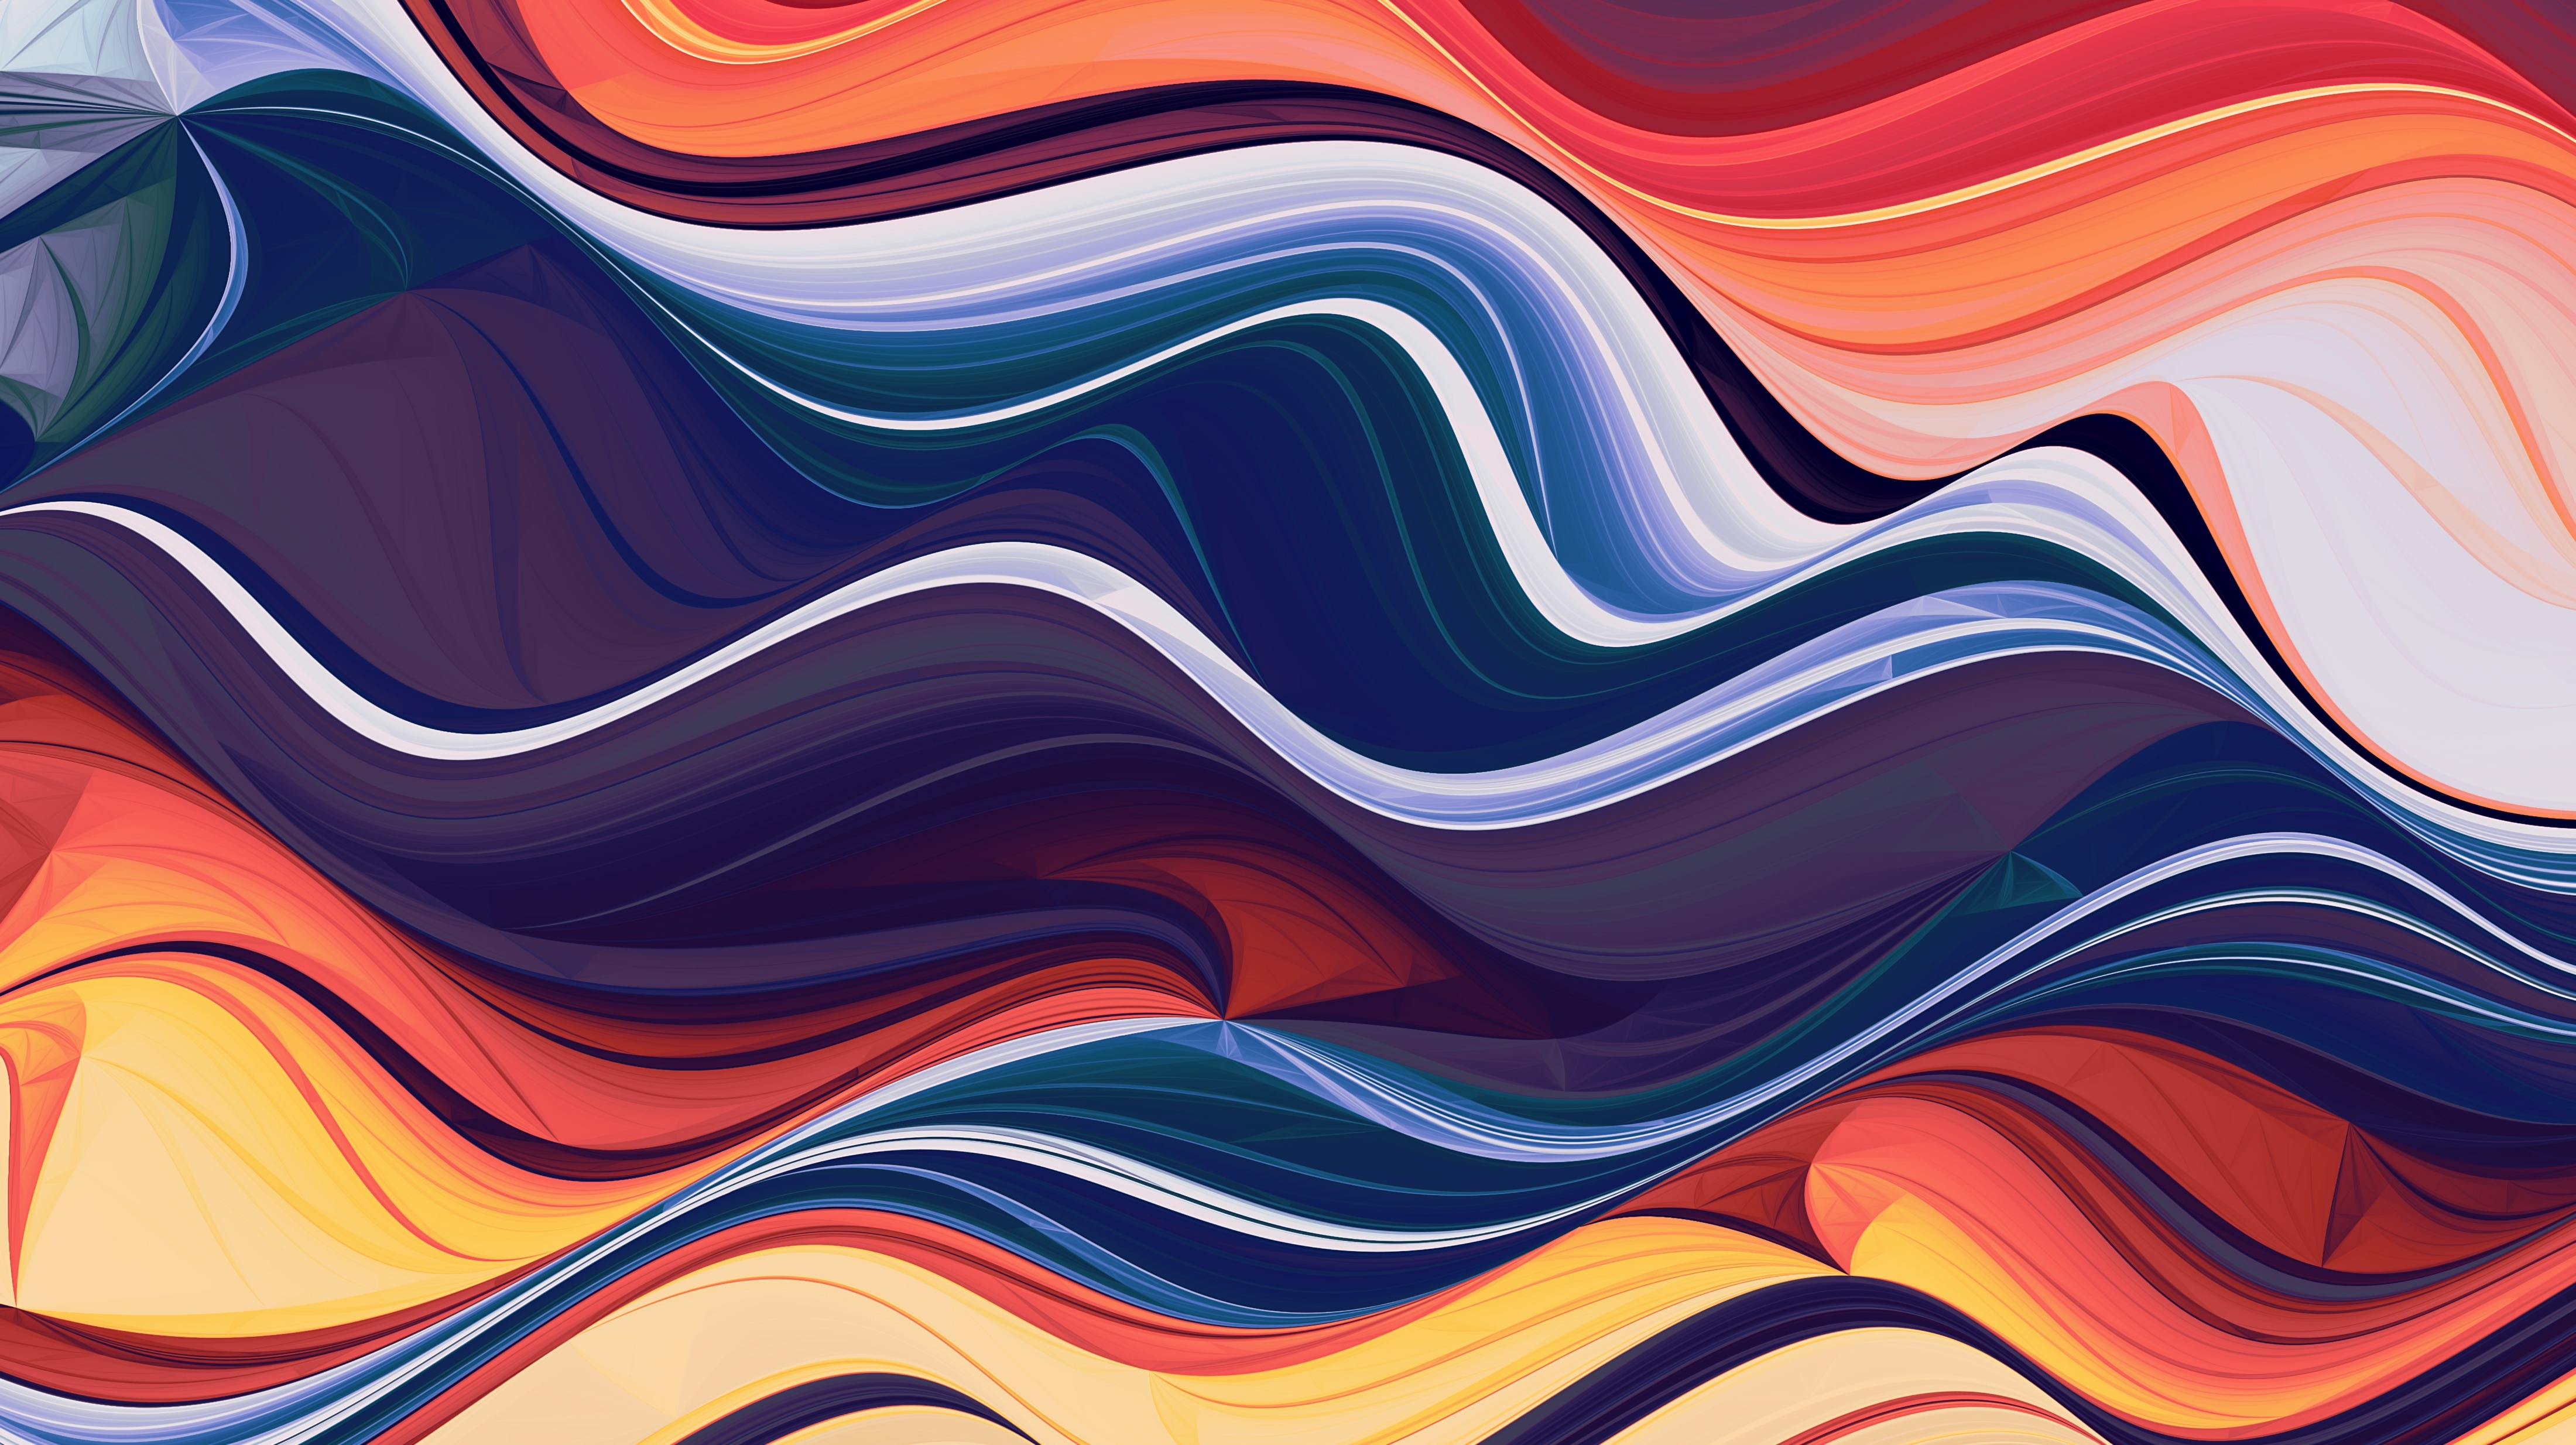 Wave Of Abstract Colors Wallpaper Hd Abstract 4k Wallpapers